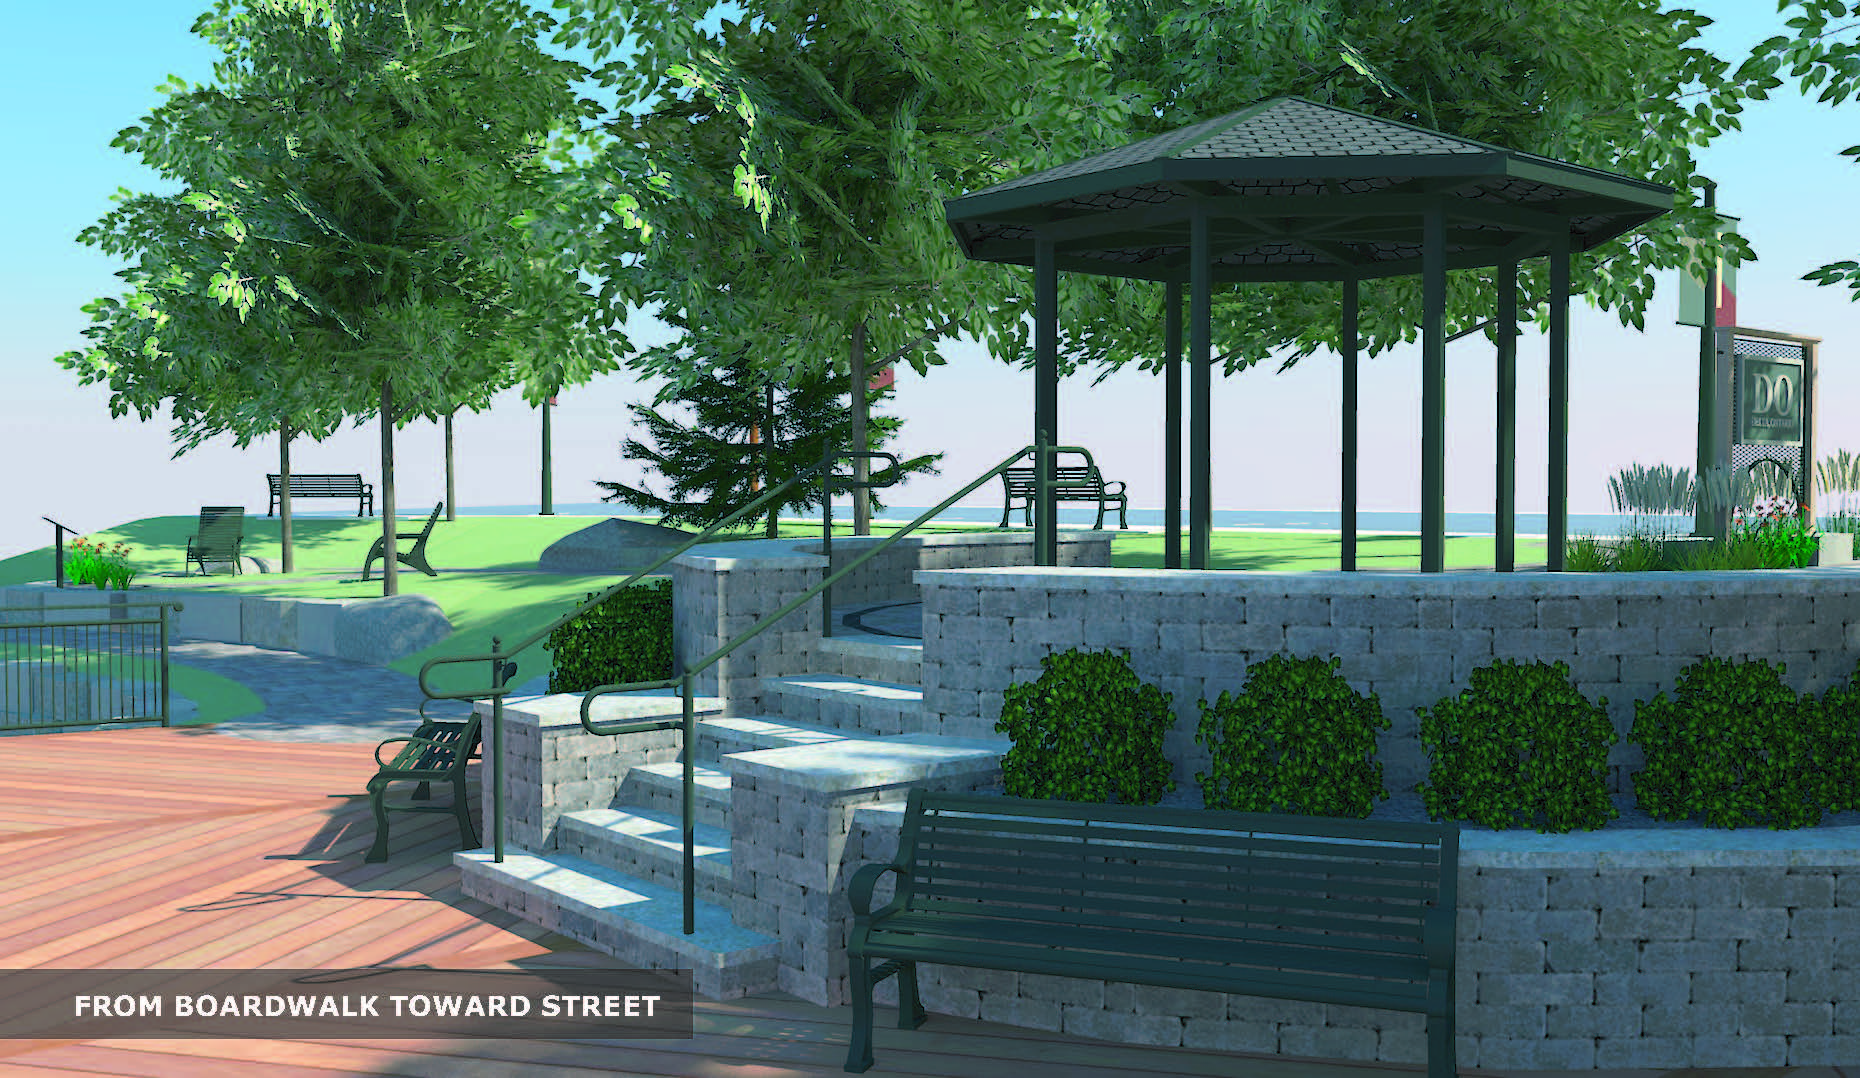 Boardwalk_Concept Design_ Community Project_Riverview Design Solutions_Architecture Landscaping.jpg